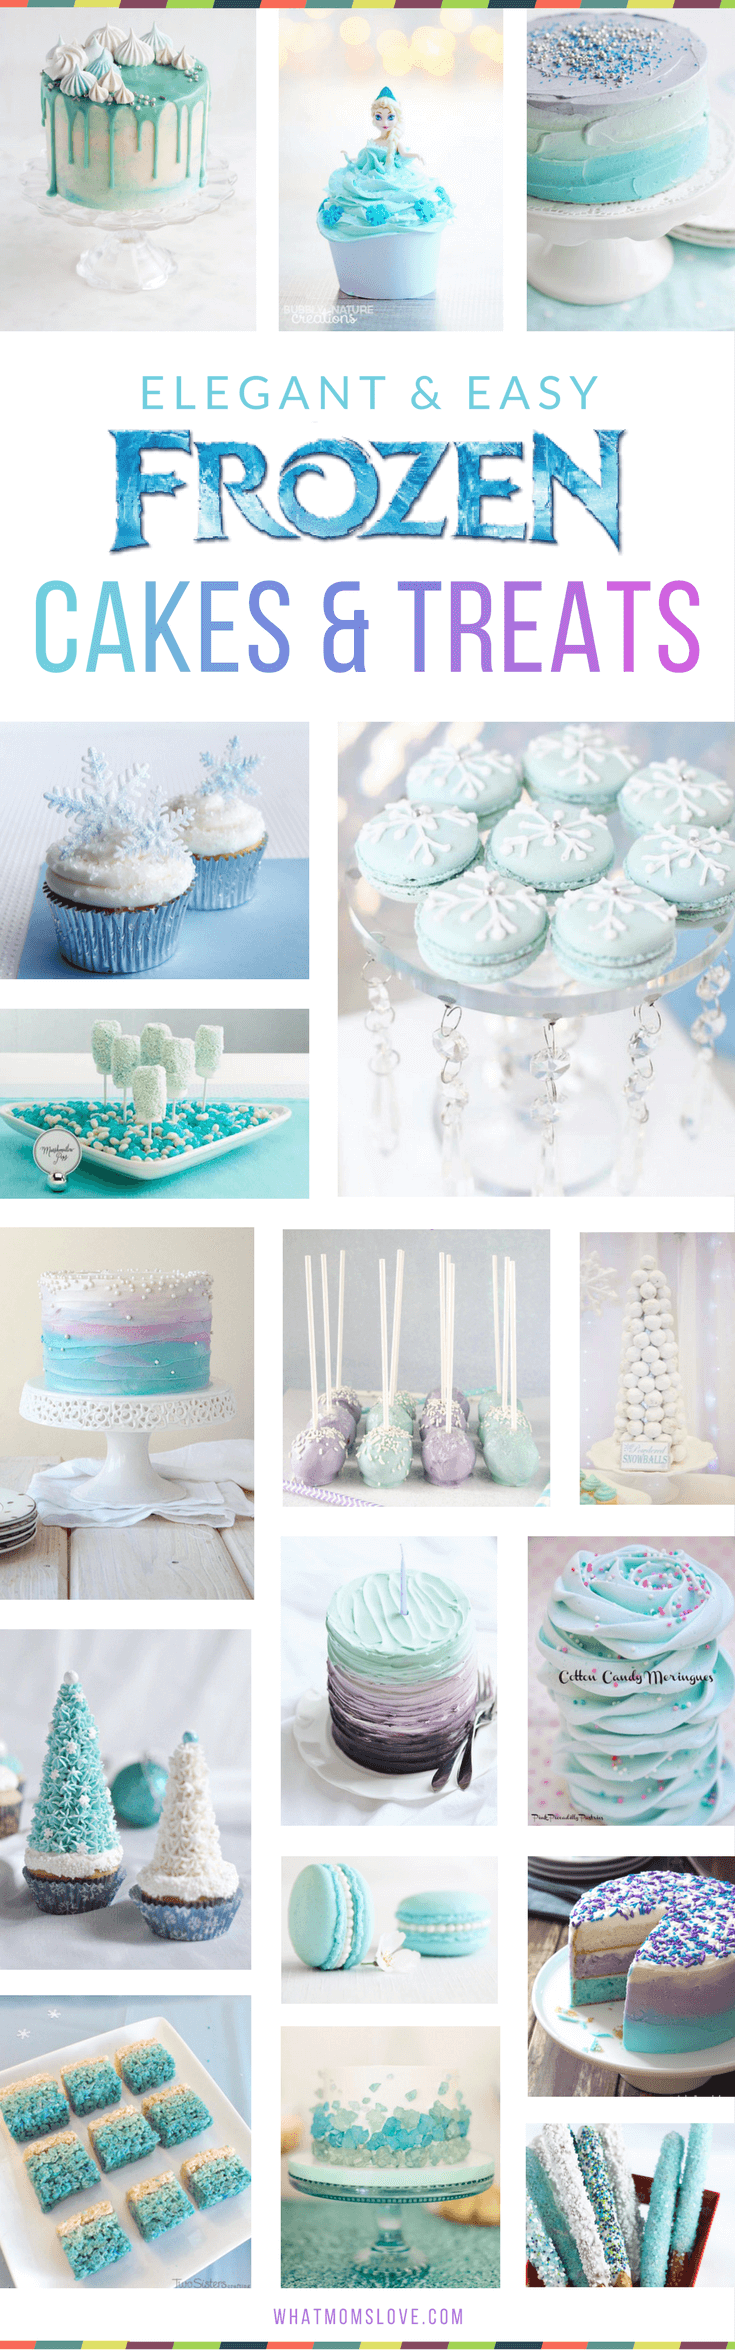 Disney Frozen Cake Ideas for Girls Birthday Party! Easy and elegant ideas that you can actually recreate for a perfect Anna and Elsa themed party - simple homemade cakes, cupcakes, pops, treats, favors and more!